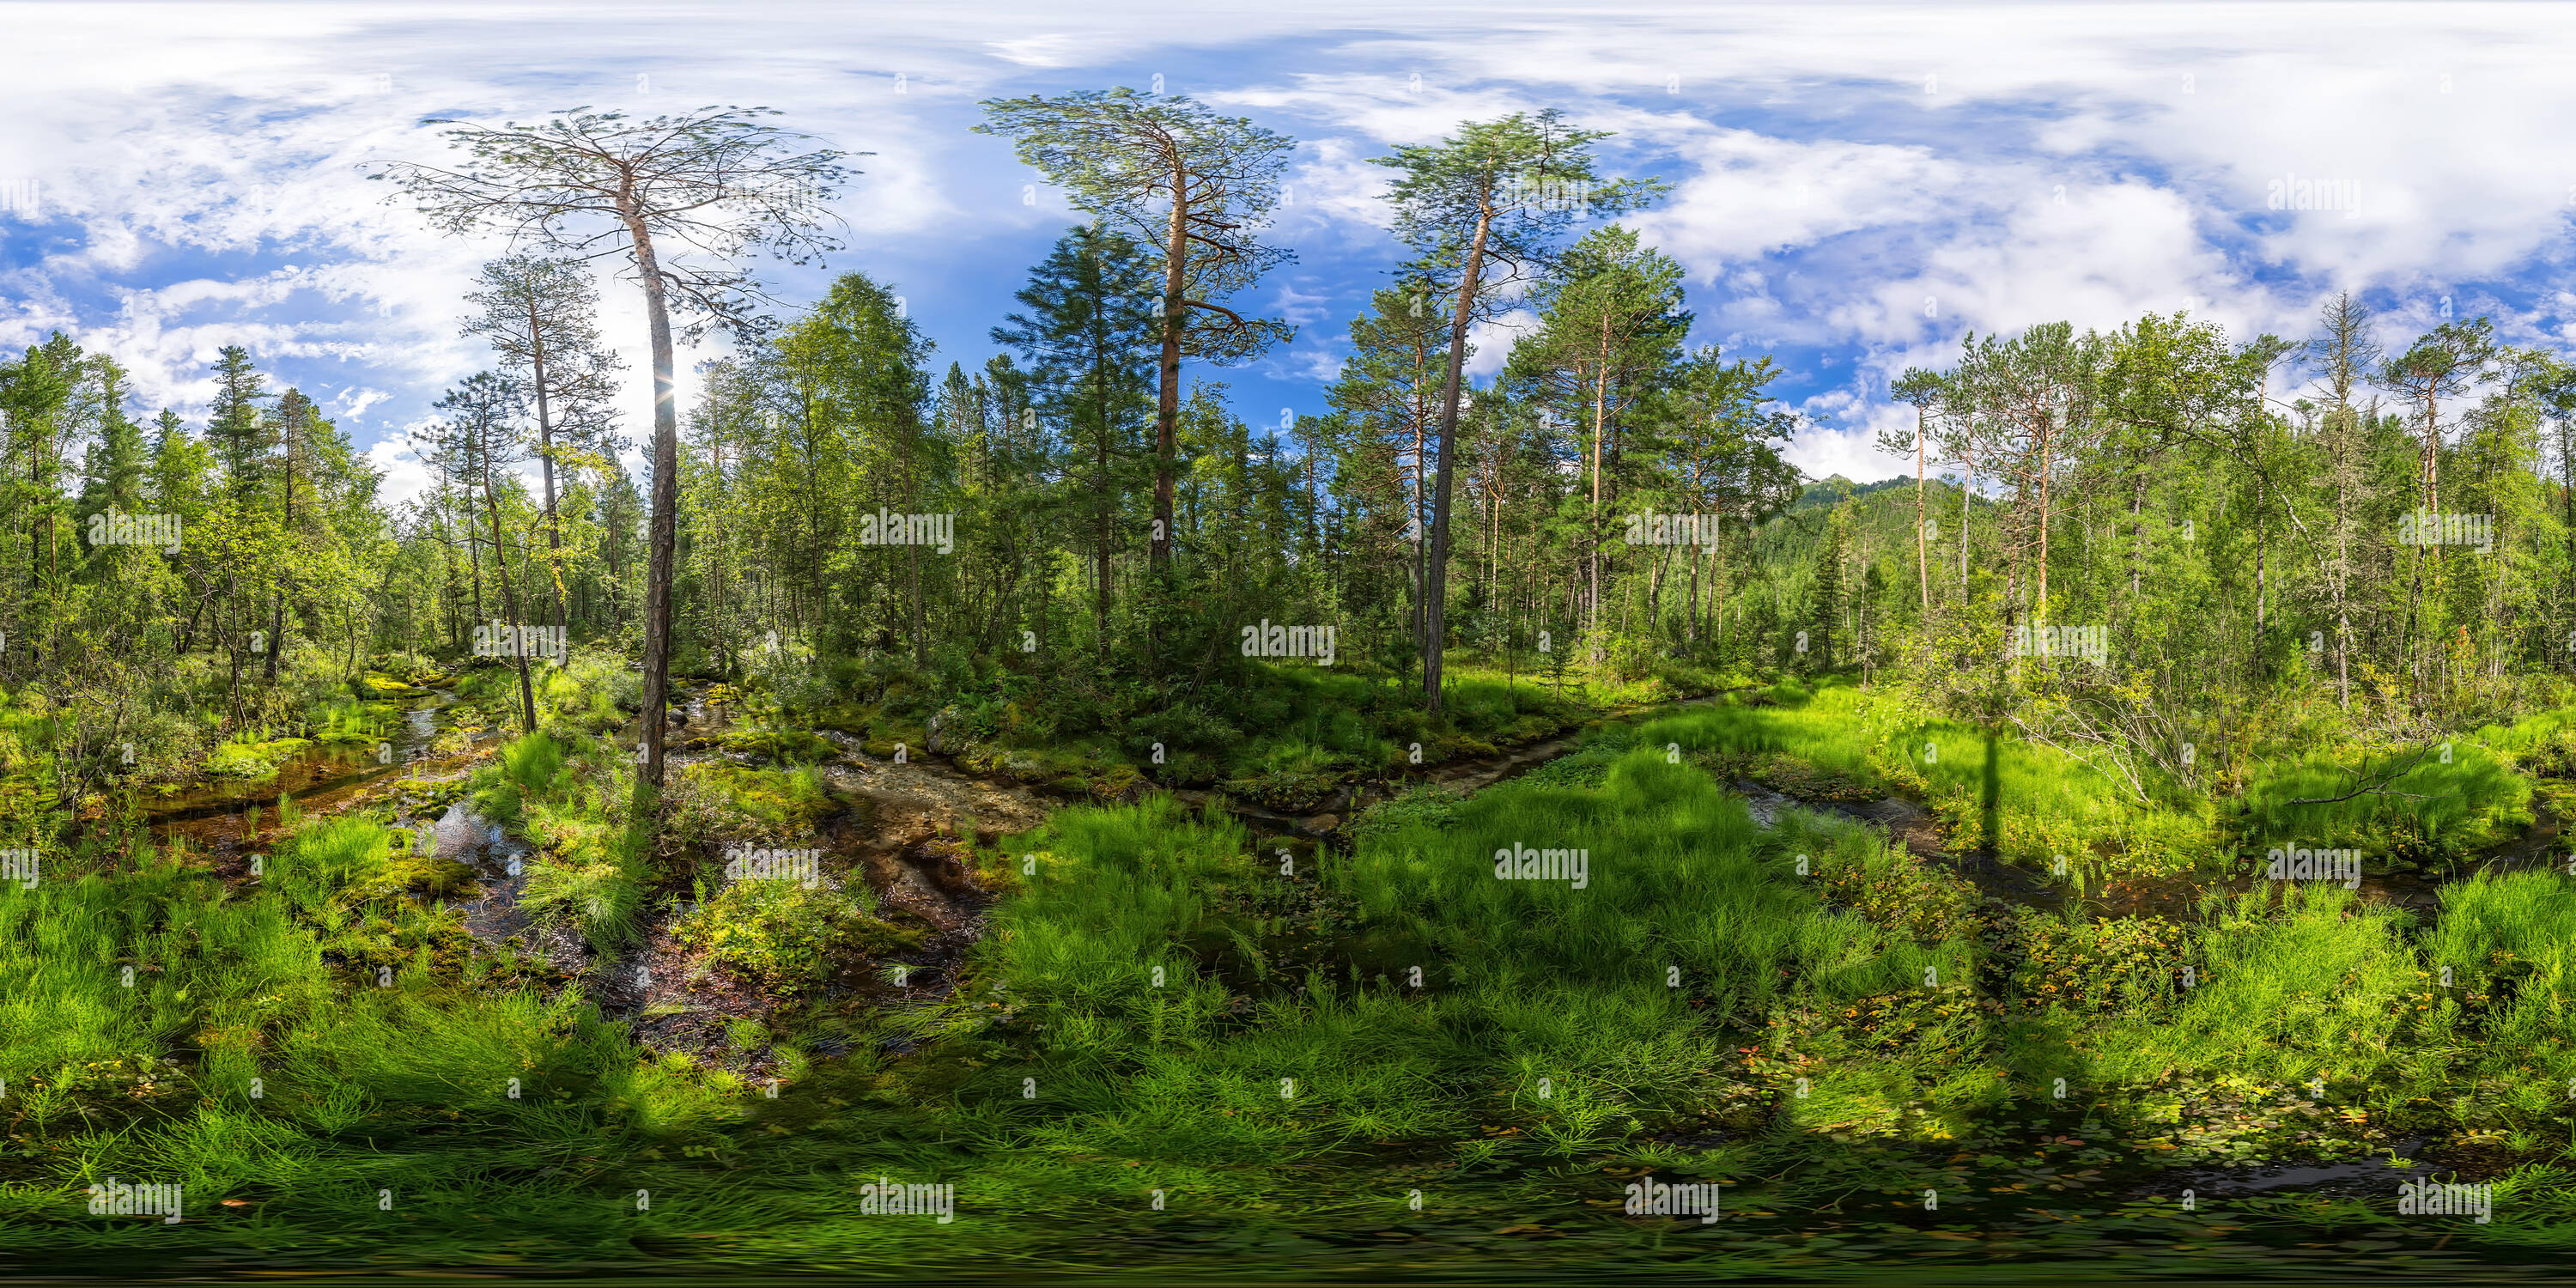 360° View of Stream flows through a thick green forest ...